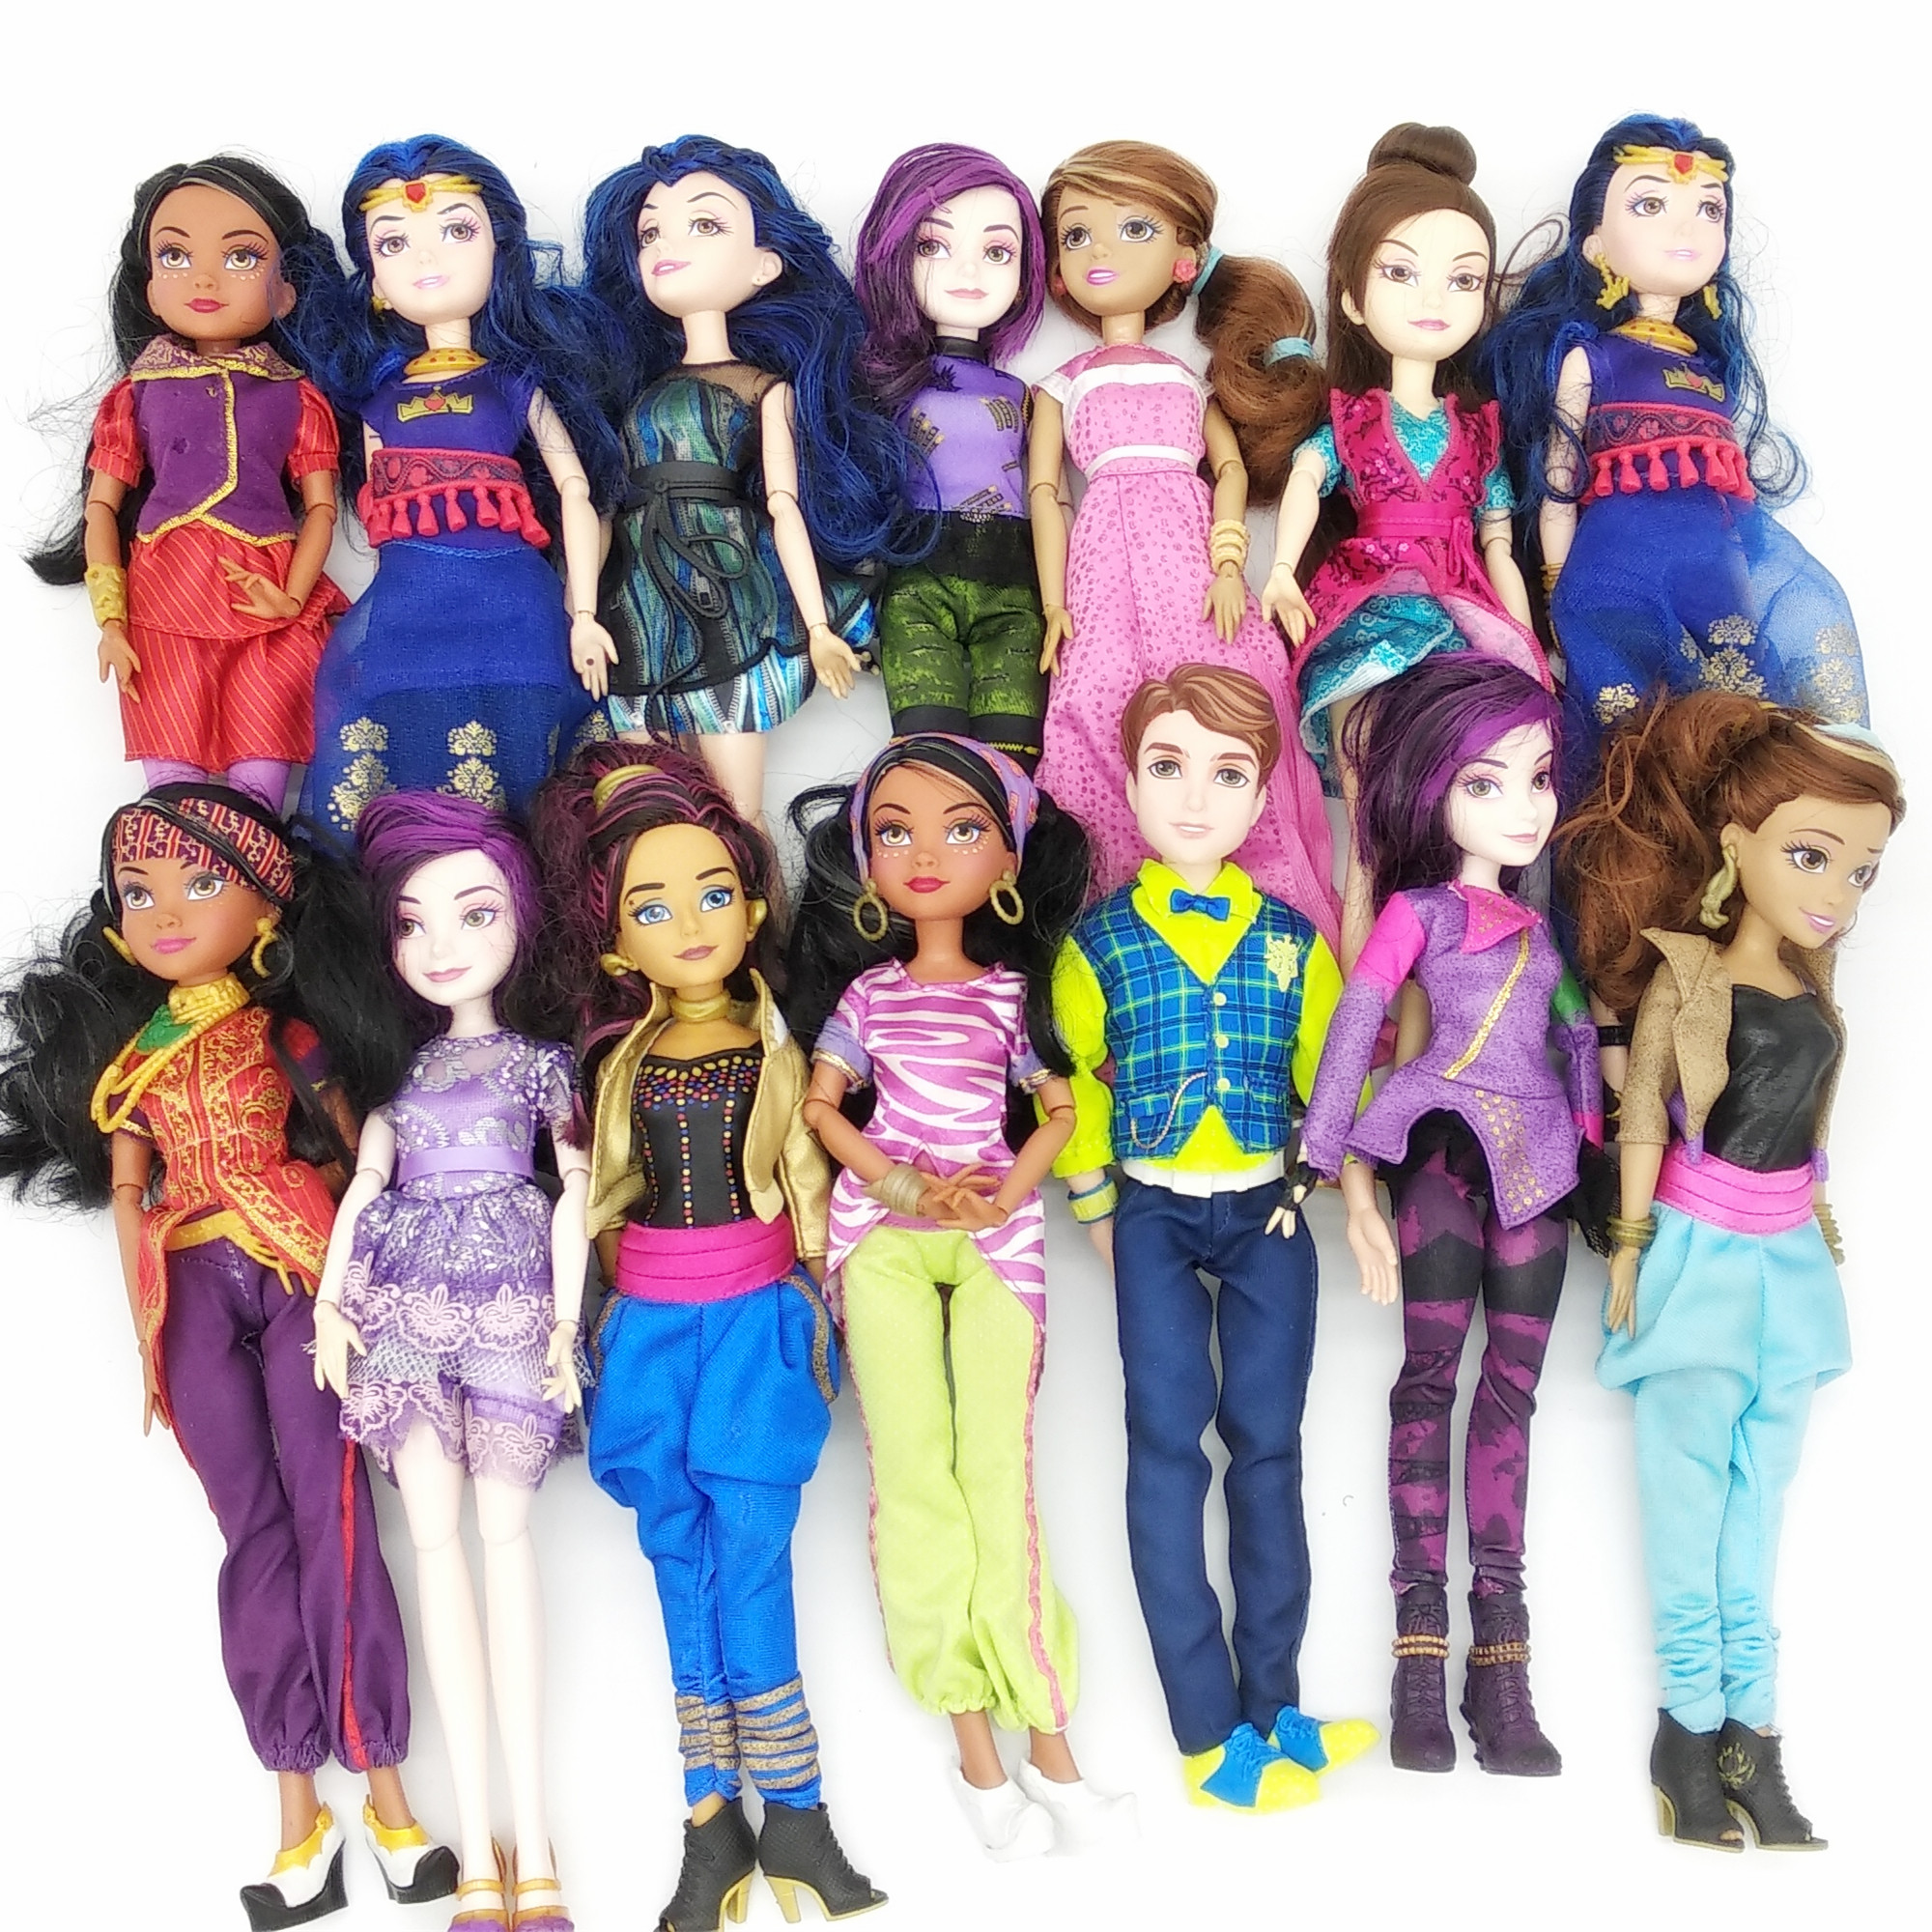 Cartoon Descendent Dolls Princess Morden Classic Action Figure  Body Joints Movable Dolls 30cm Toys For Girl Kids Gift Xmas